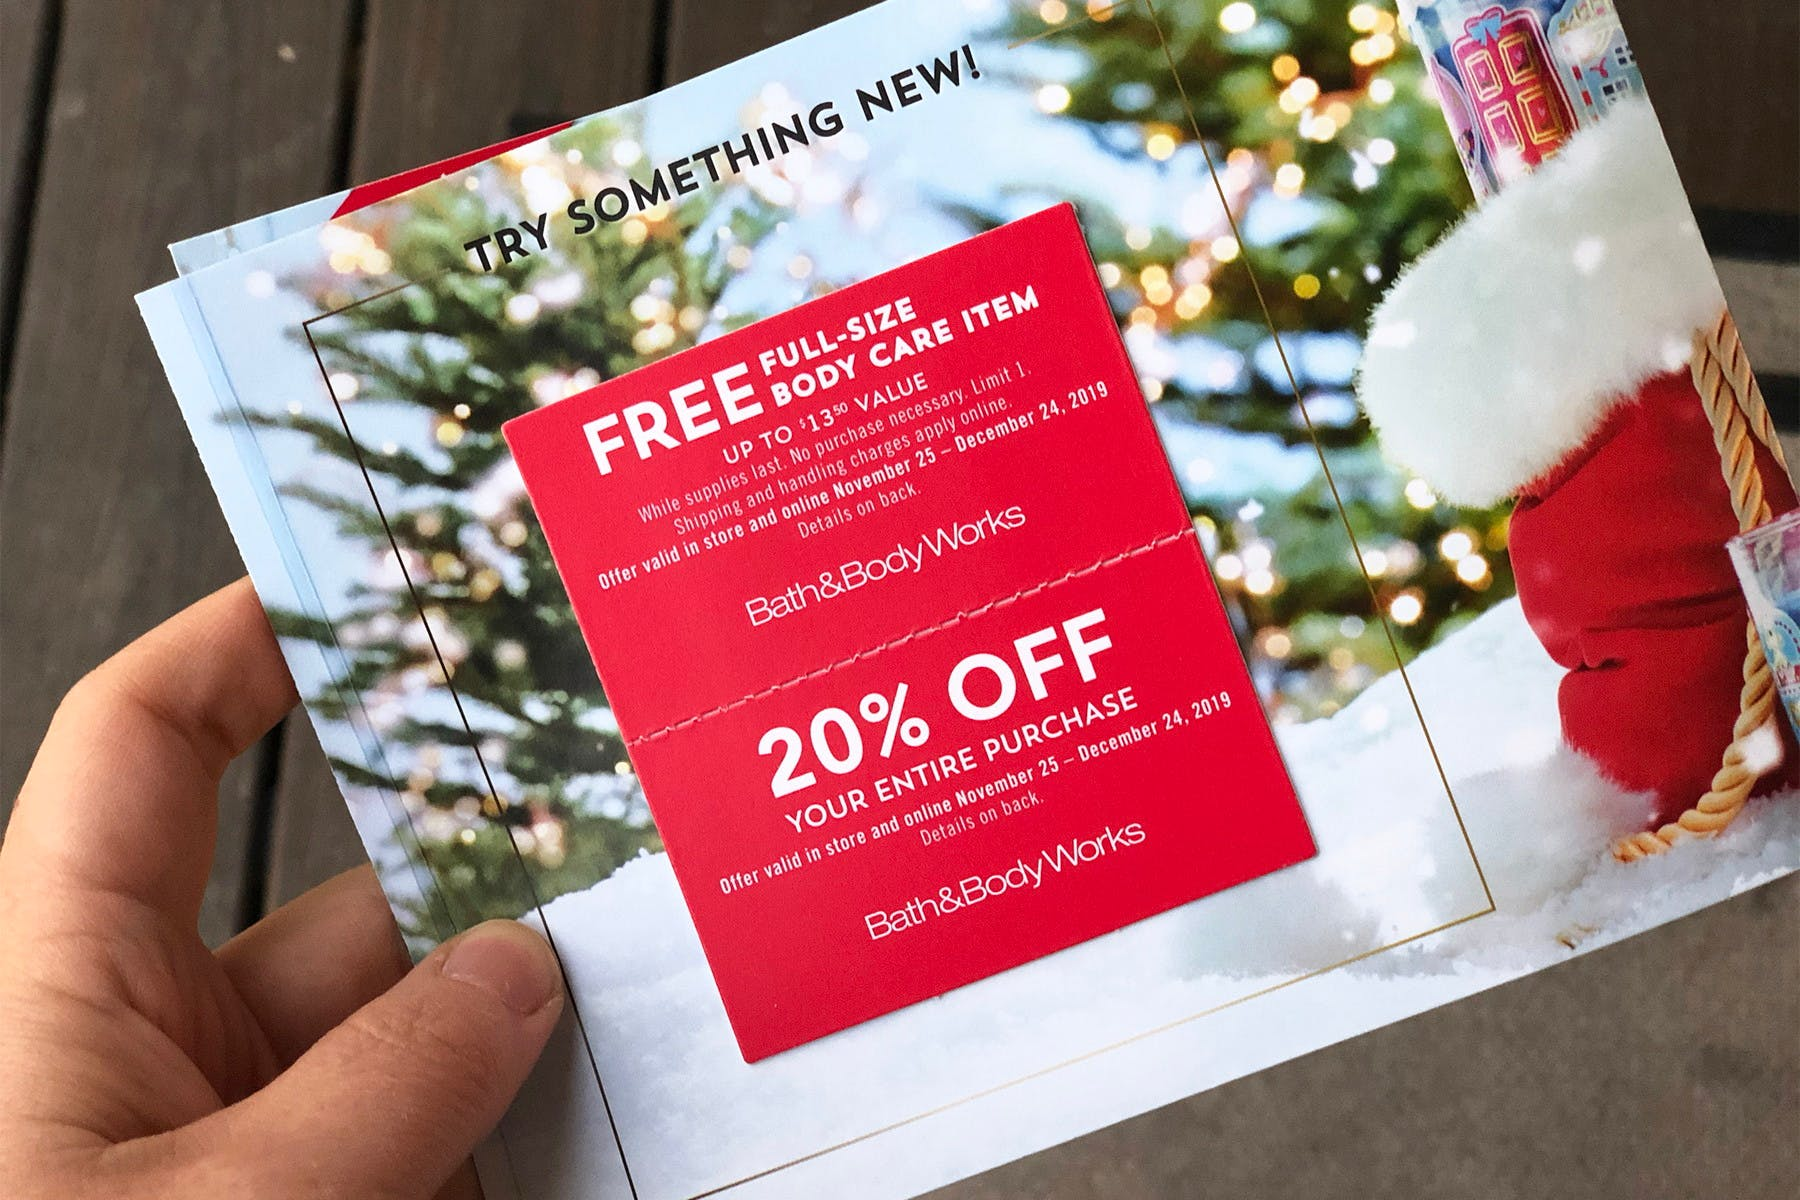 Online Christmas Shopping 2020 Versus 2019 23 Bath & Body Works Sale Hacks That'll Blow Your Mind   The Krazy